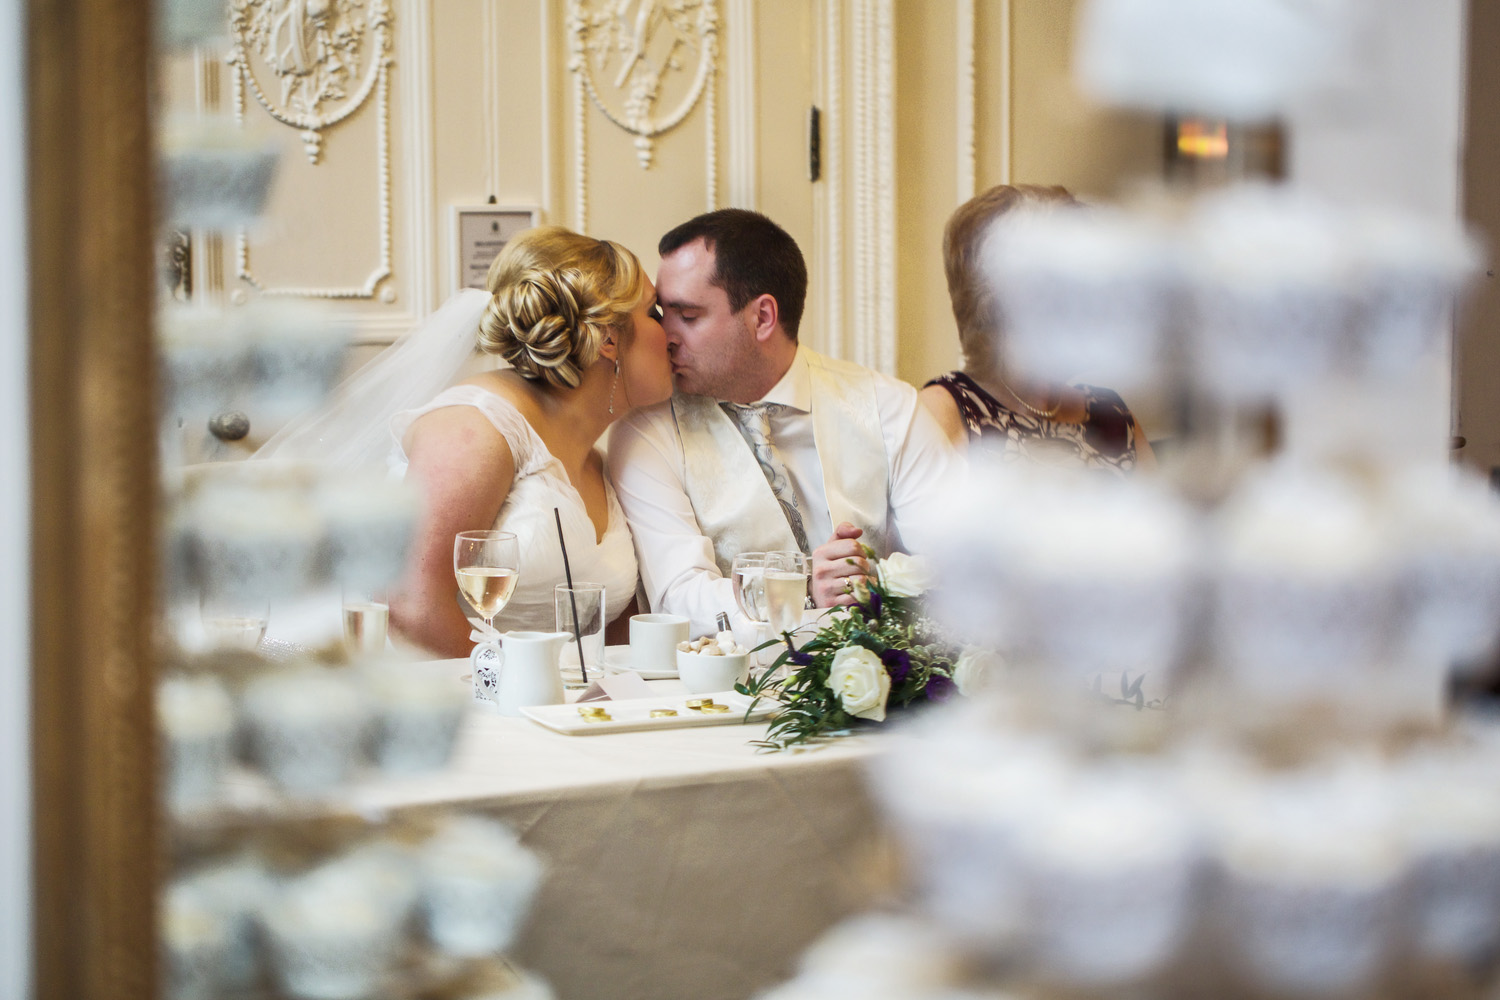 Taplow_House_Hotel_Wedding_Photographer_Maidenhead_053.jpg